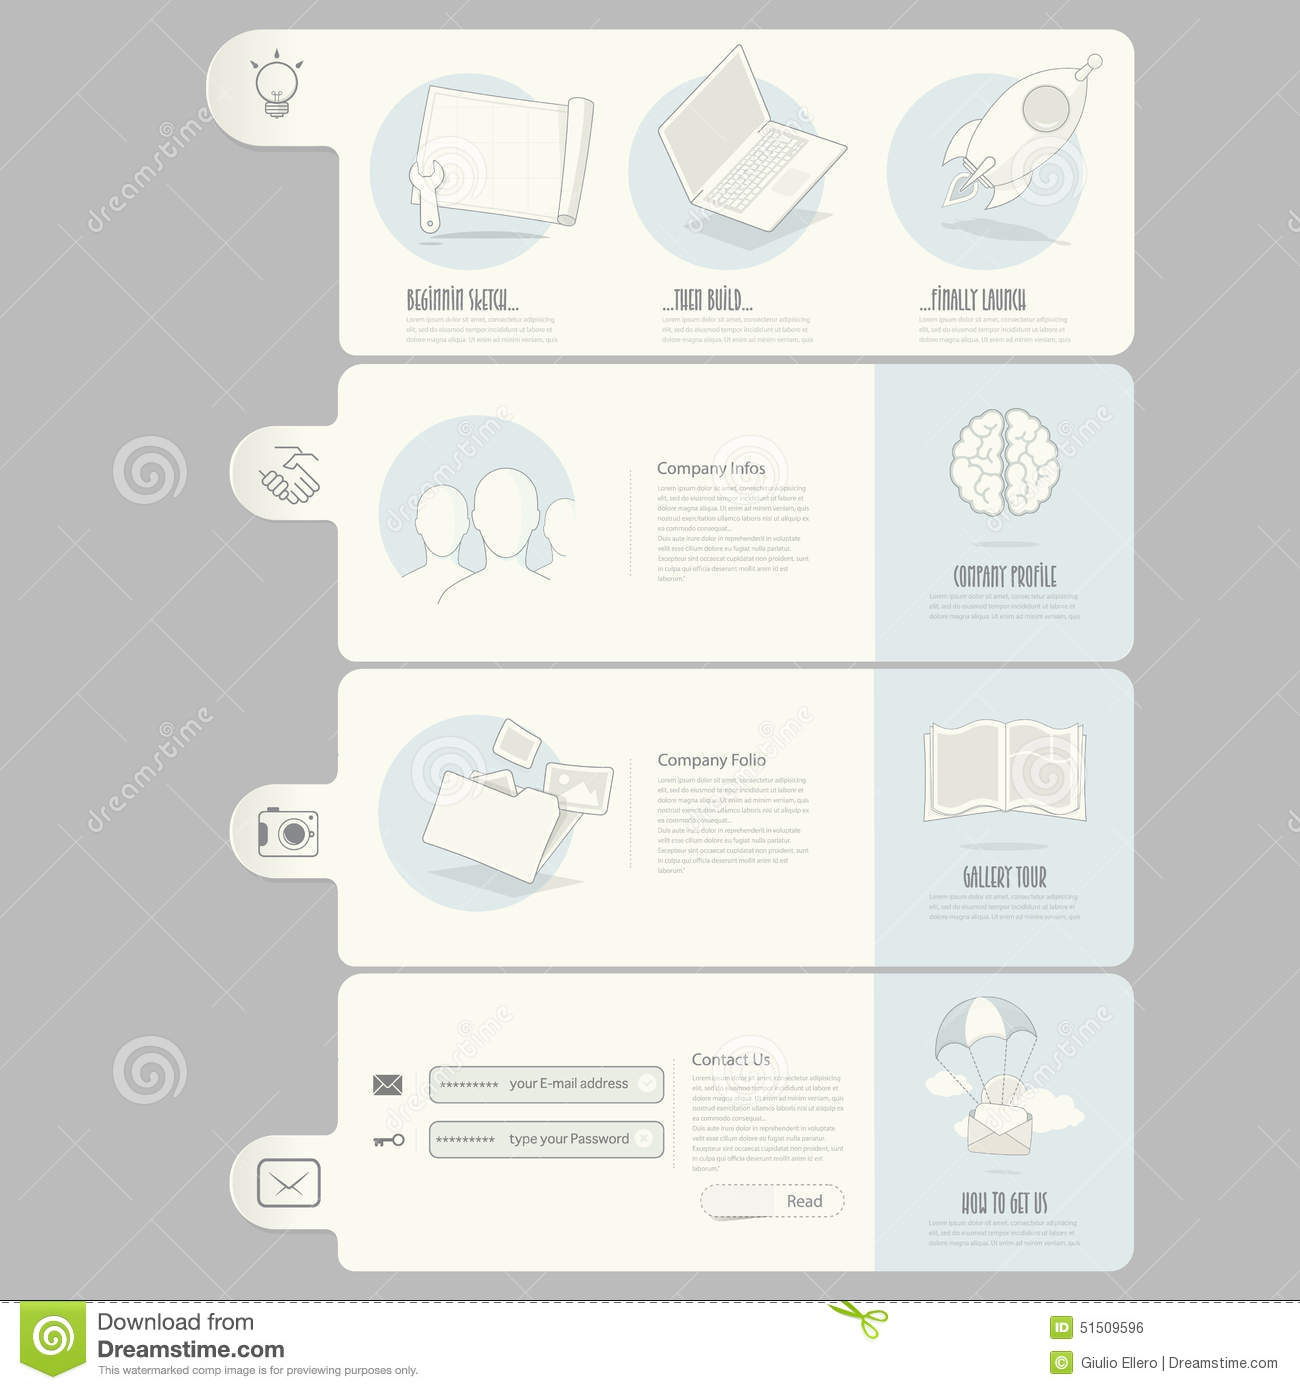 Website templates elements for company portfolio stock for Company portfolio template doc